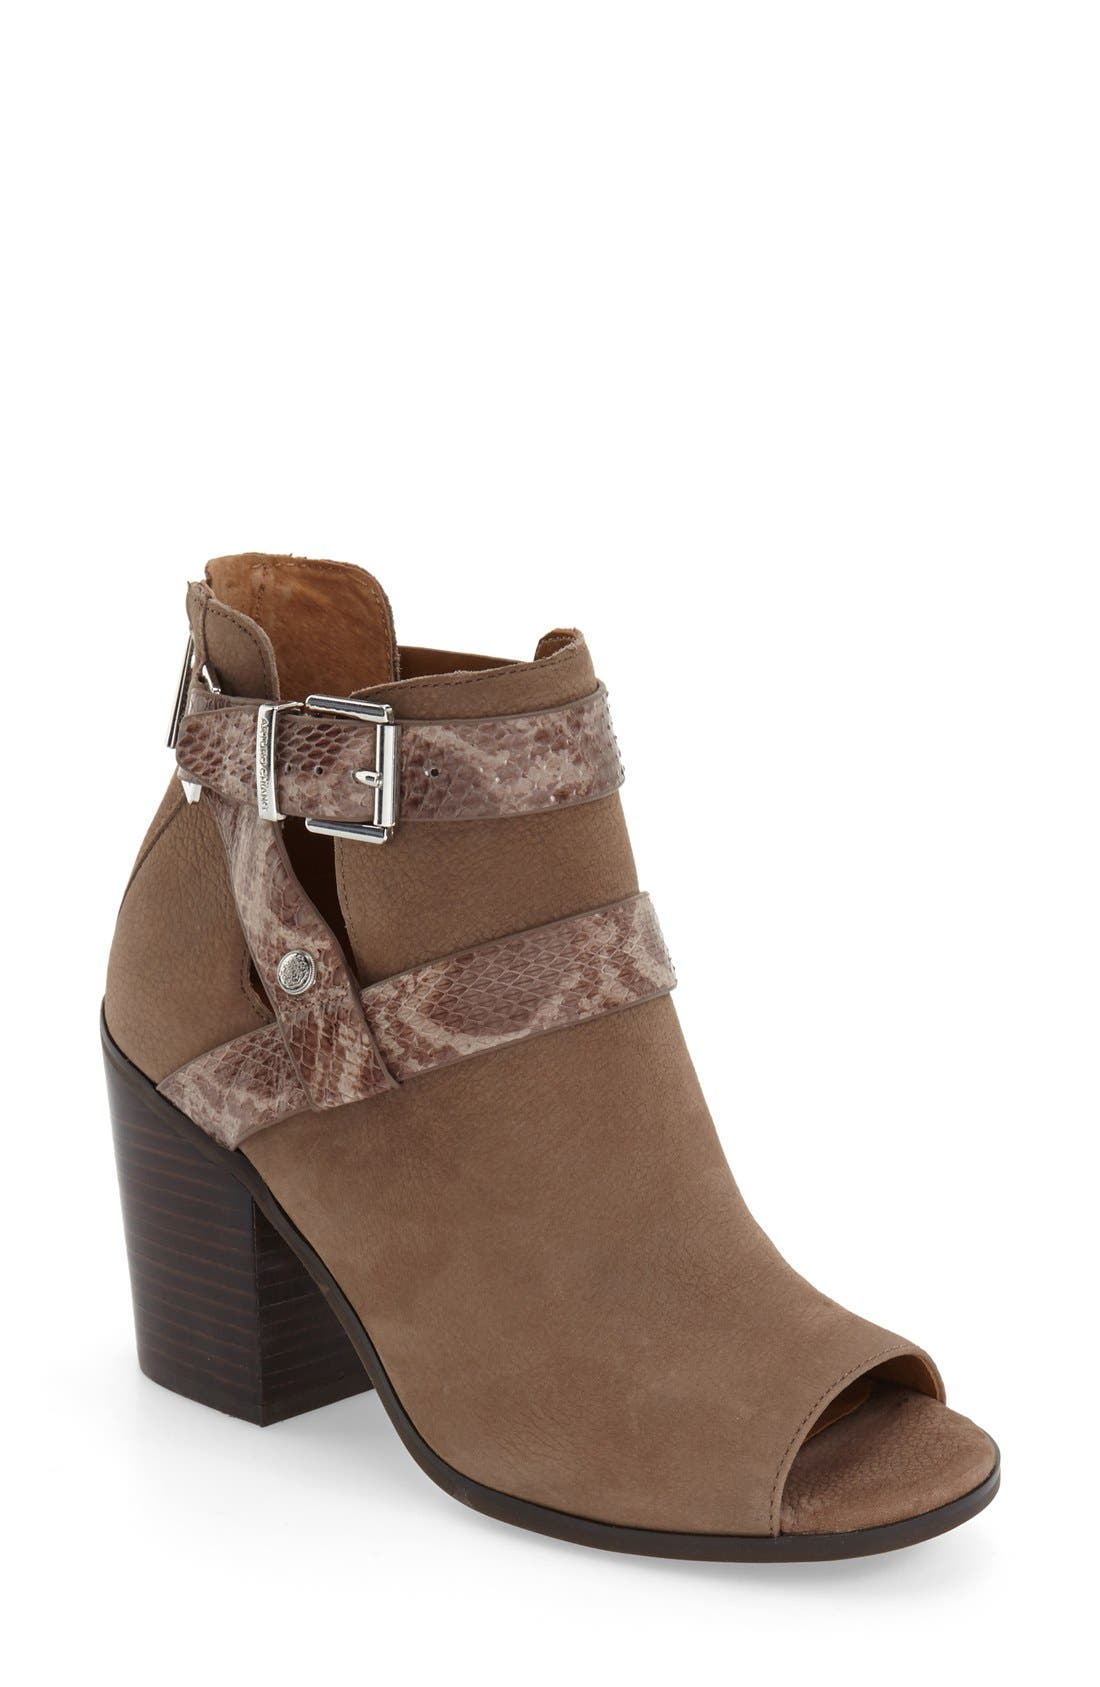 'Caraleigh' Peep Toe Bootie,                         Main,                         color, 741